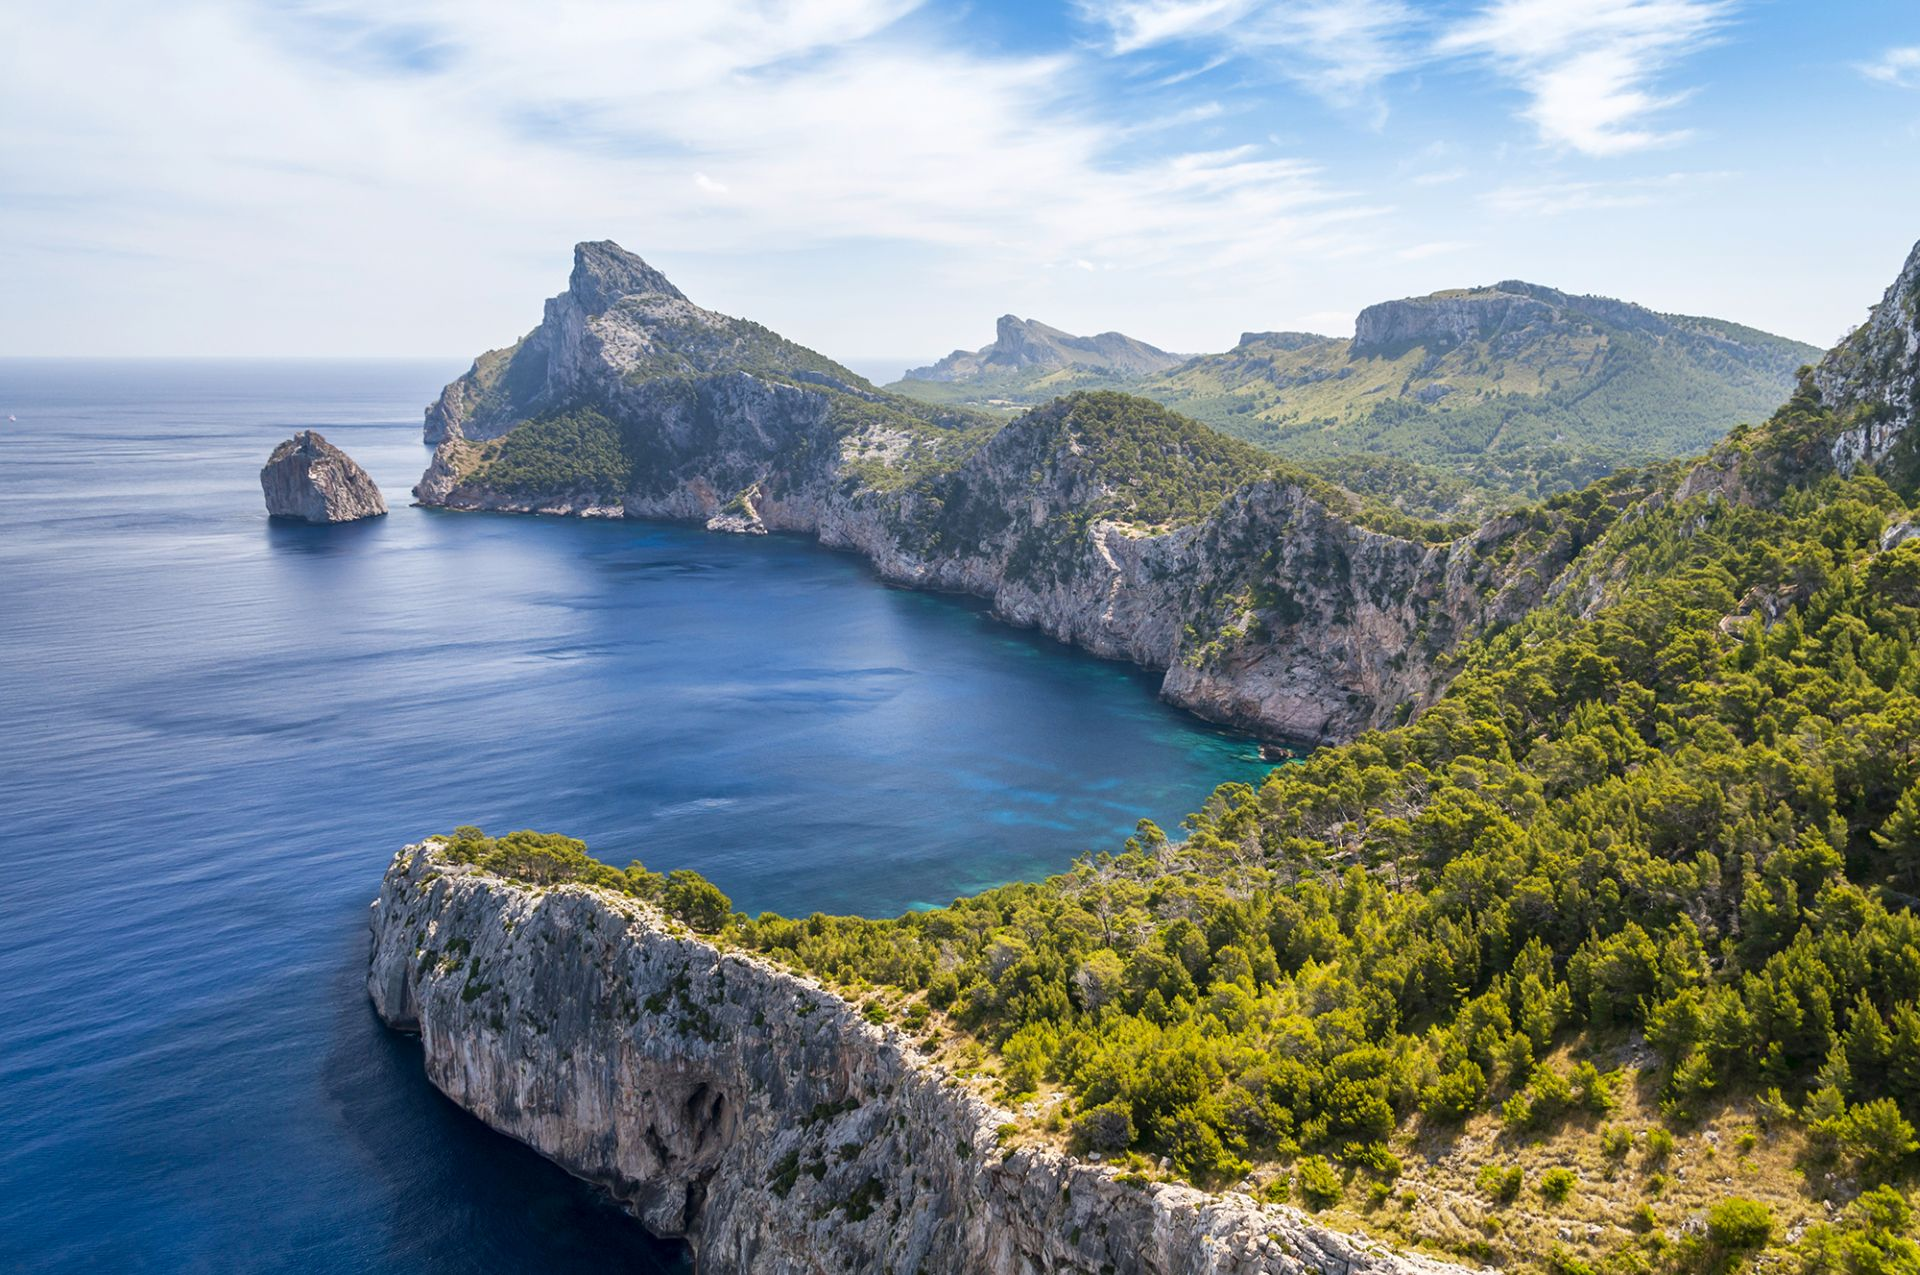 Randonnee Tours offers cycling and hiking tours in Mallorca, Spain